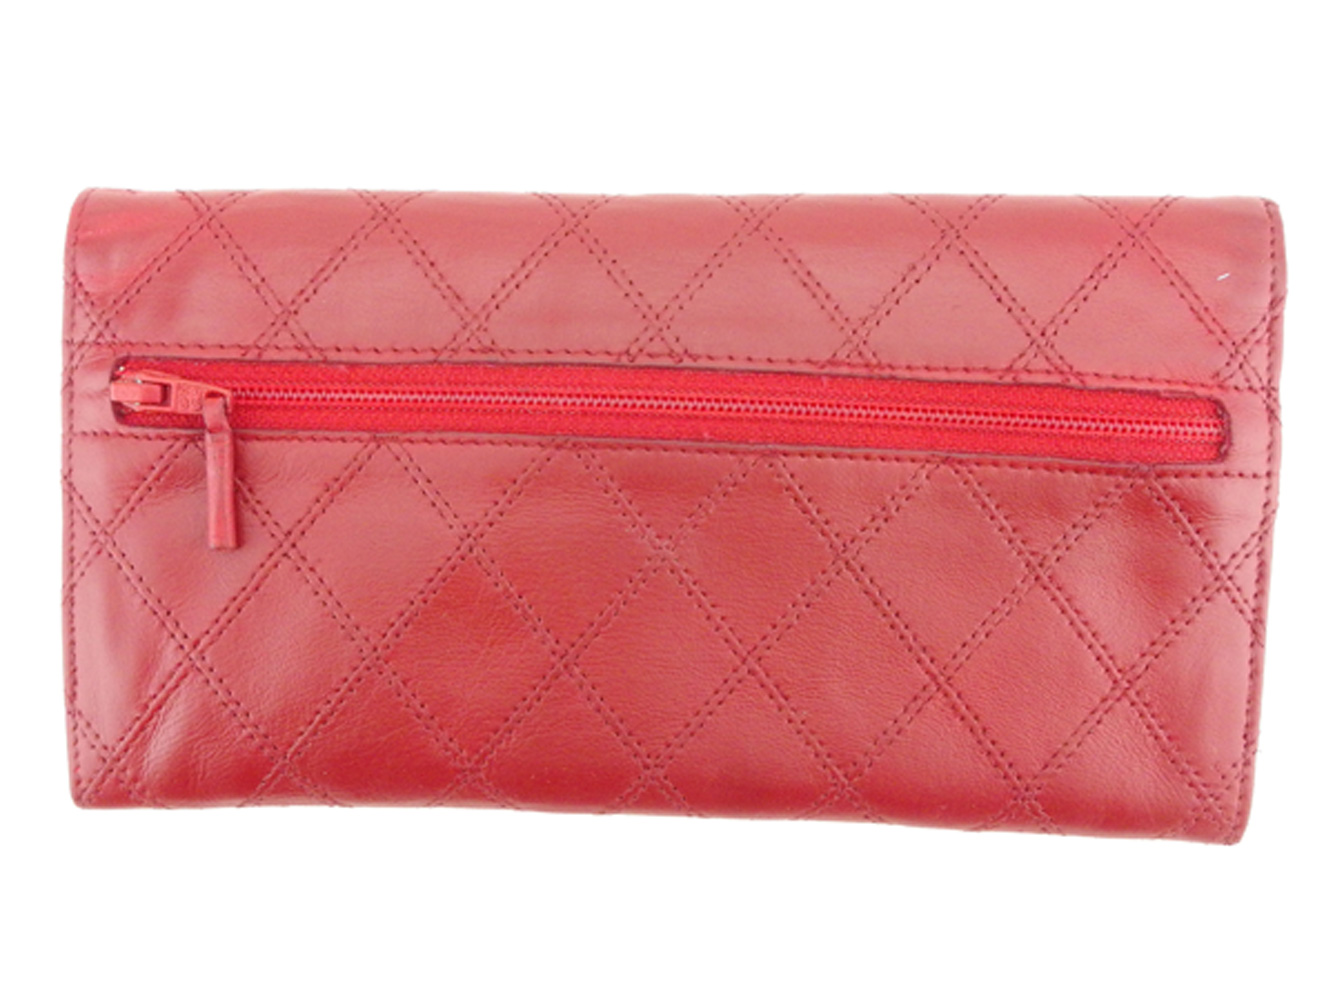 cb2eab9a00b8 ... Wallet Lady's old Chanel matelasse red gold lambskin vintage beauty  product T7994 with the Chanel CHANEL ...